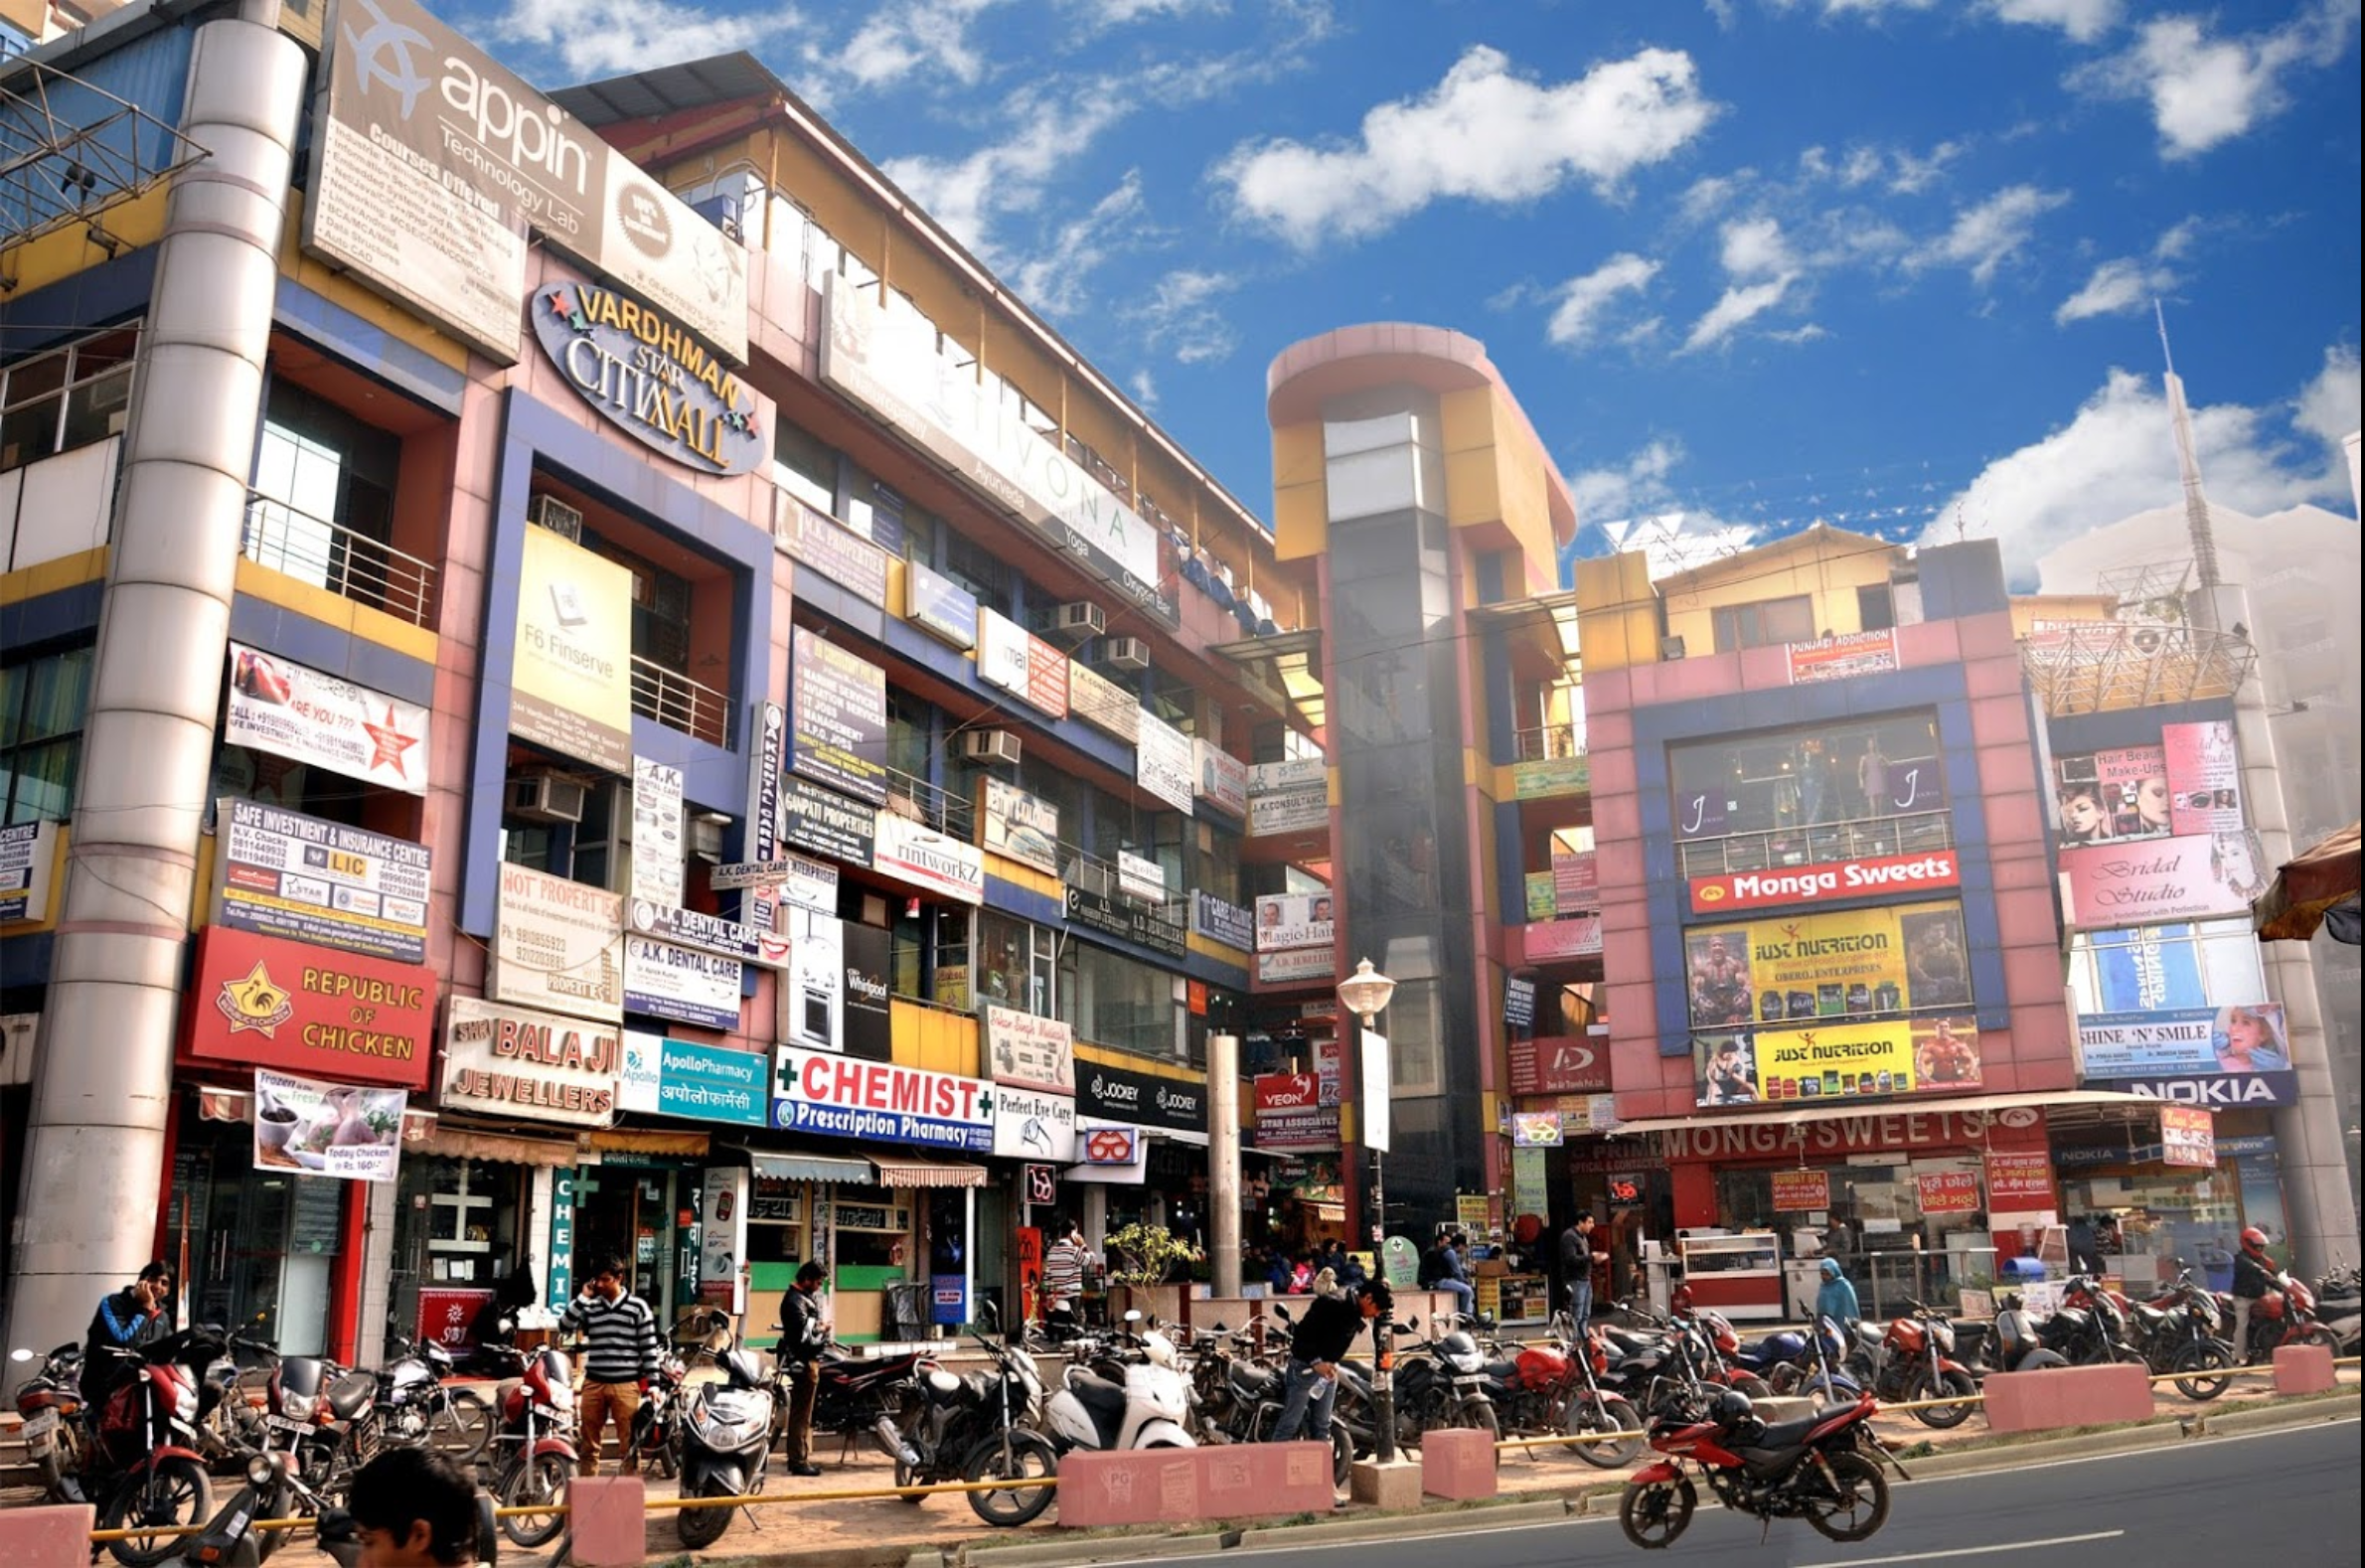 Vardhman Mall - Commercial property for sale In Sector 5, Bawana